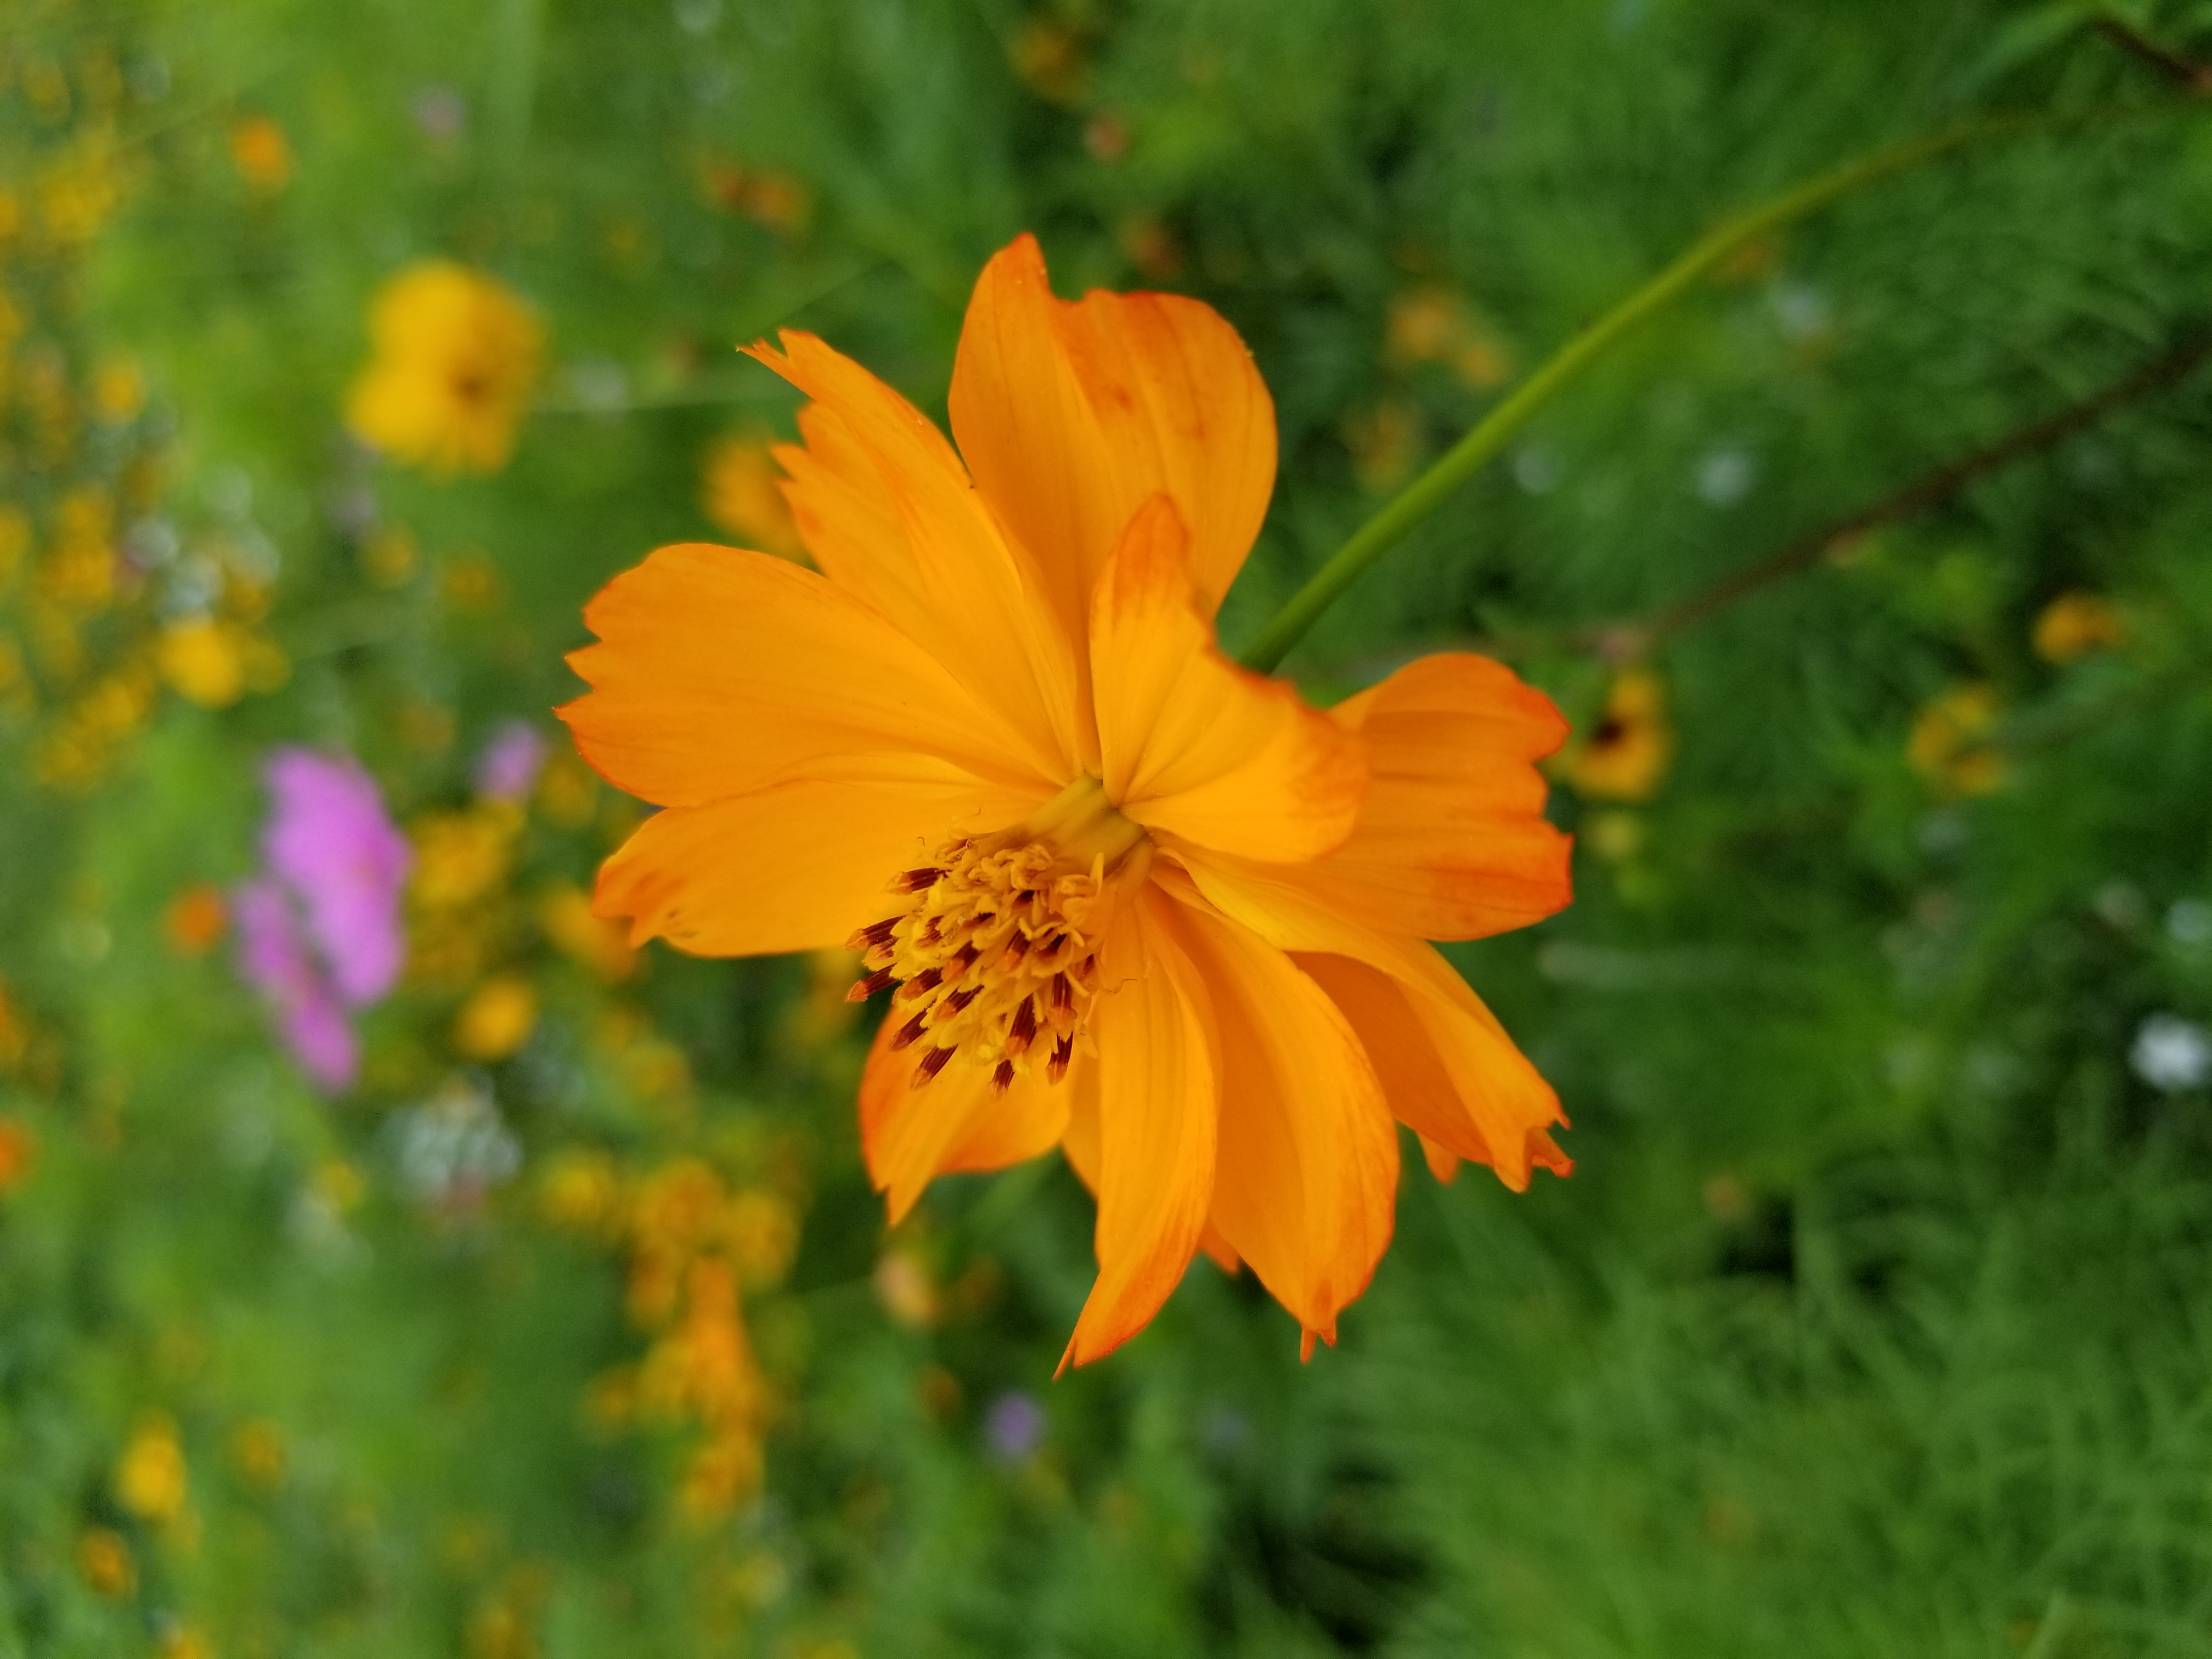 Orange yellow flower